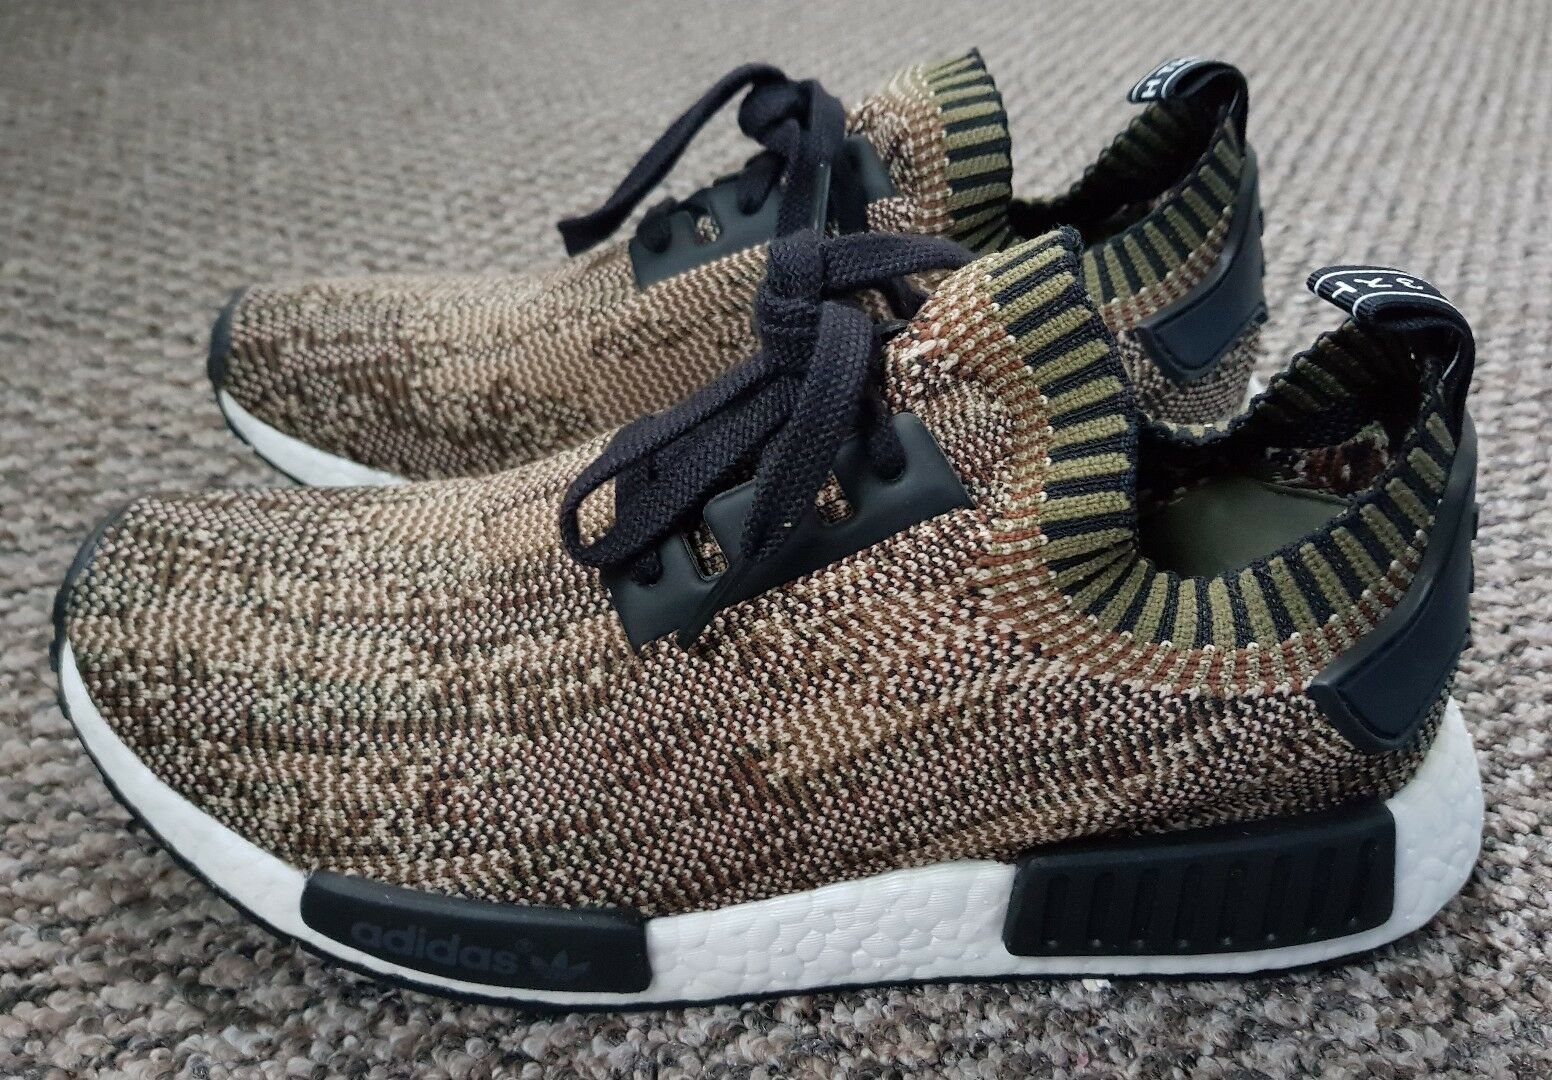 Adidas Originals NMD Camo Glitch trainers size 9 olive green